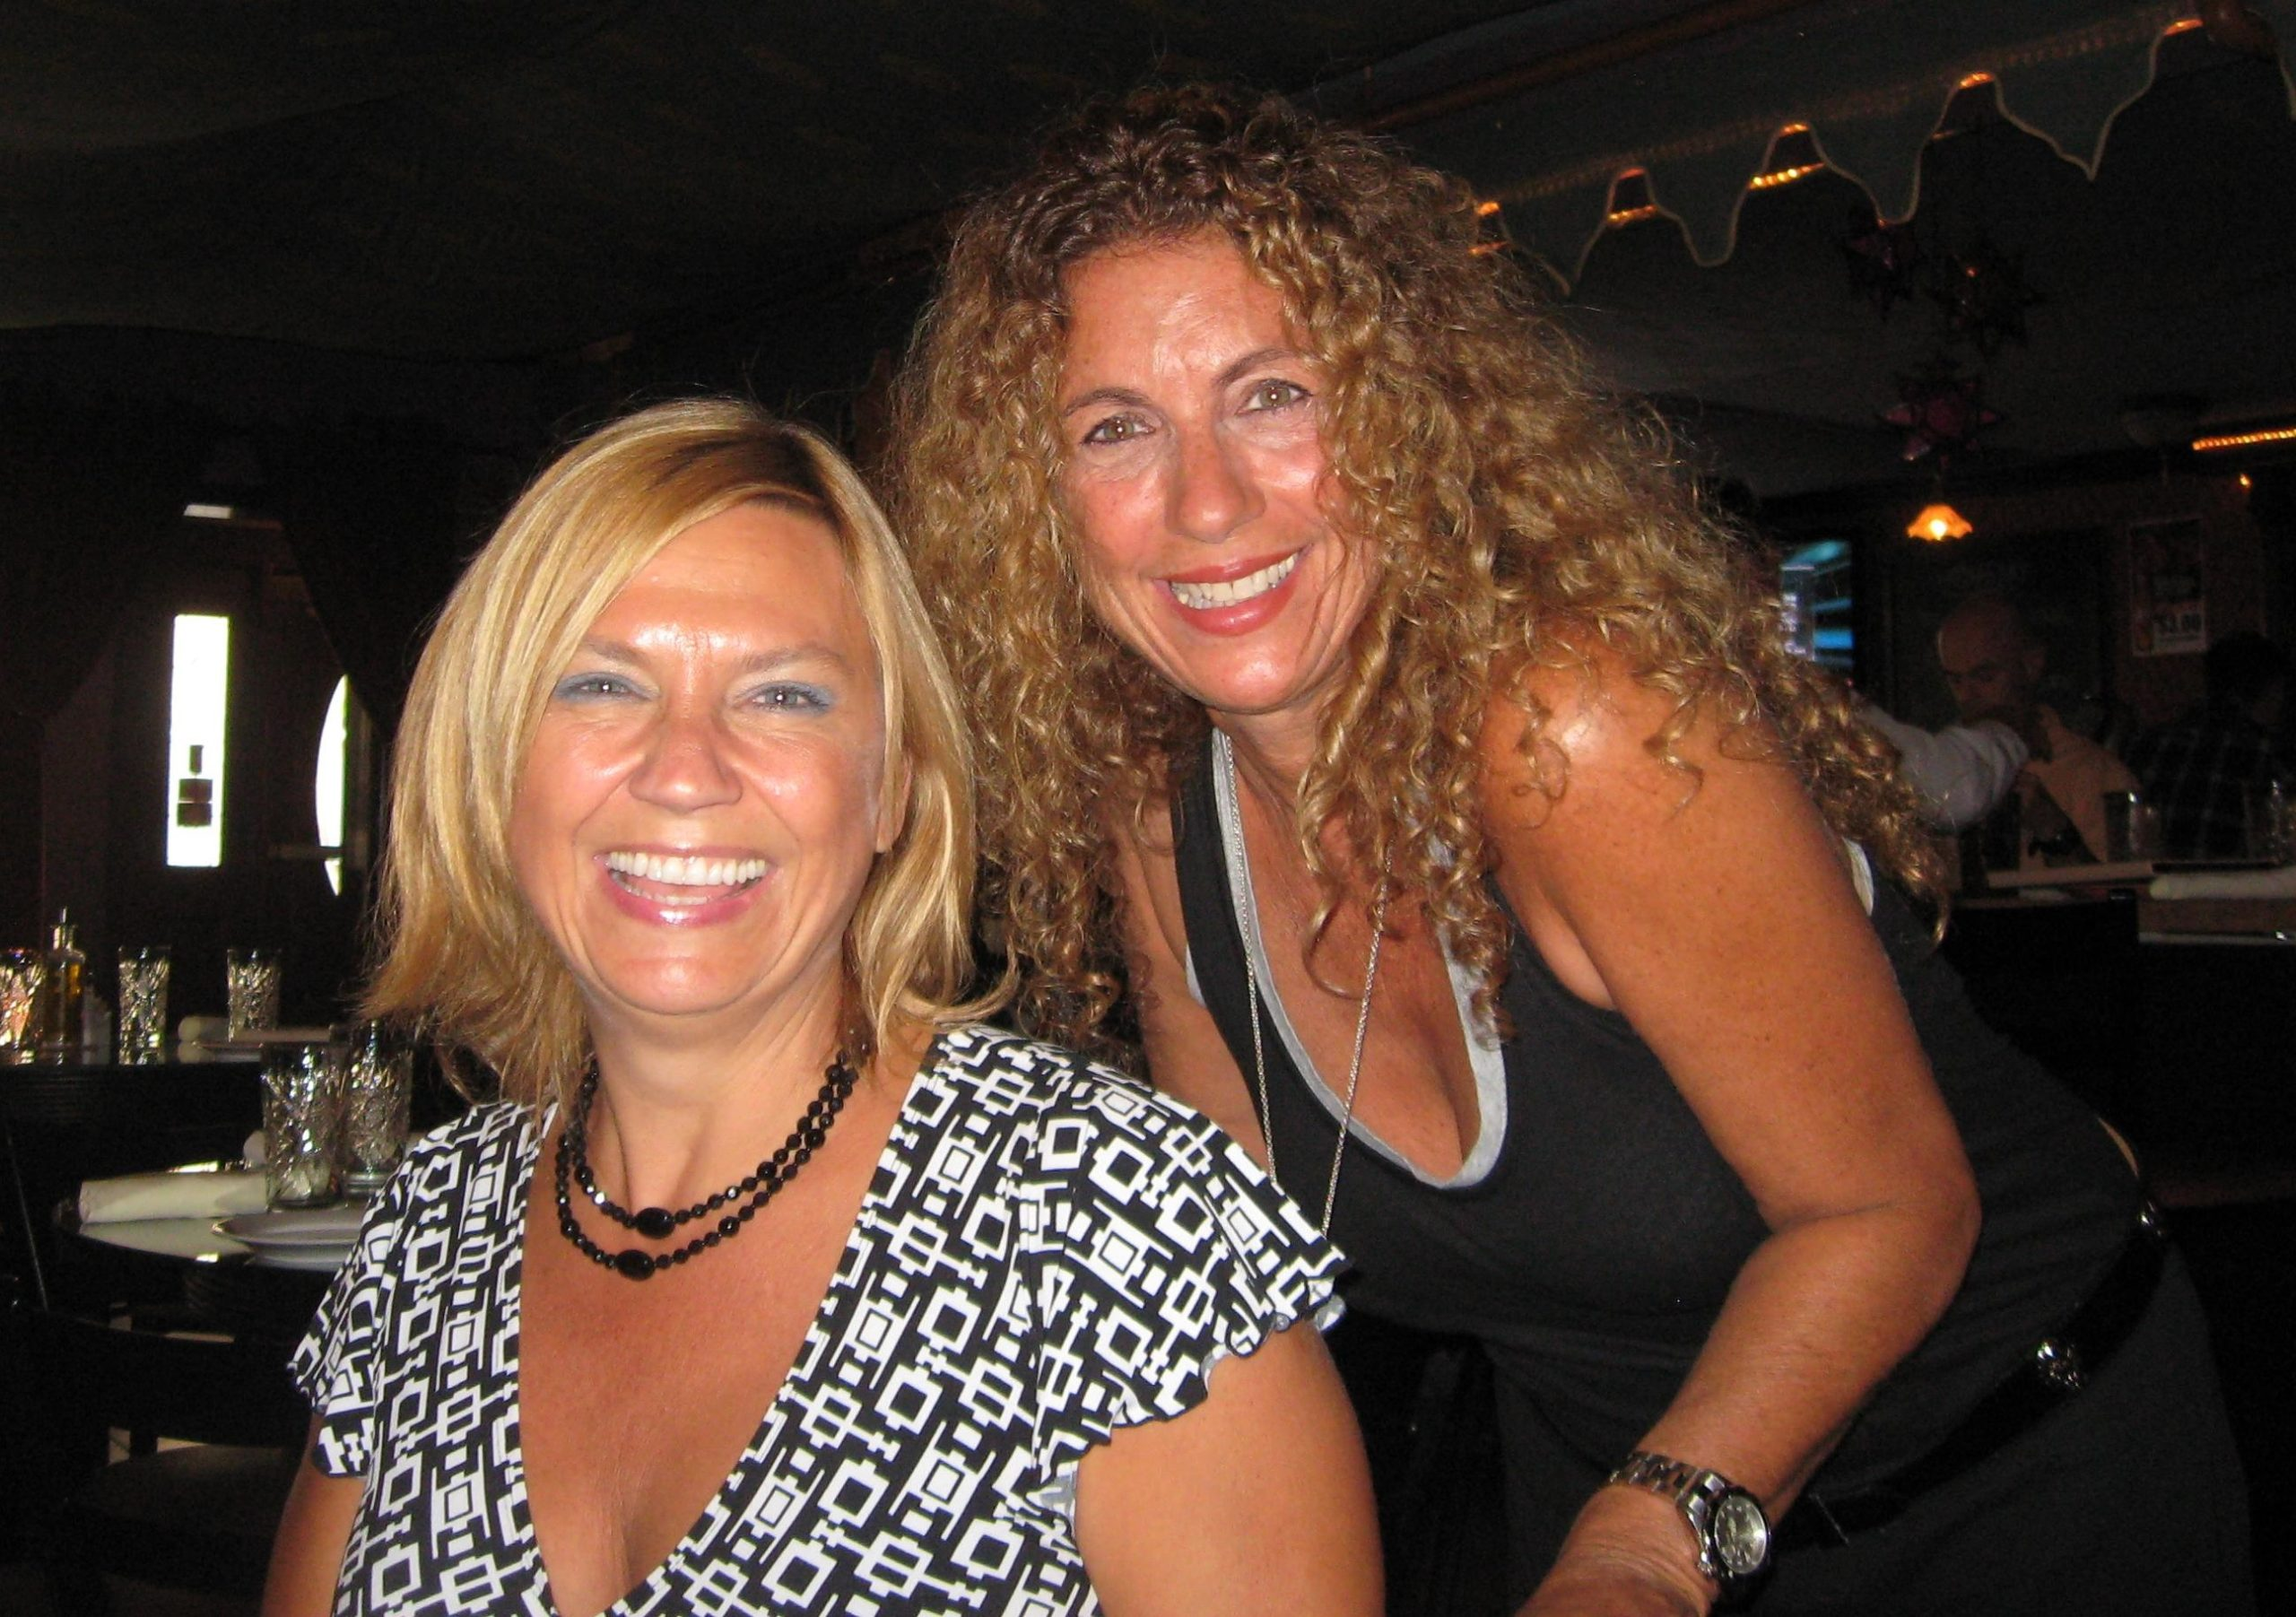 Conshy Girls Prove Friendship and Business Can Mix on the Main Line